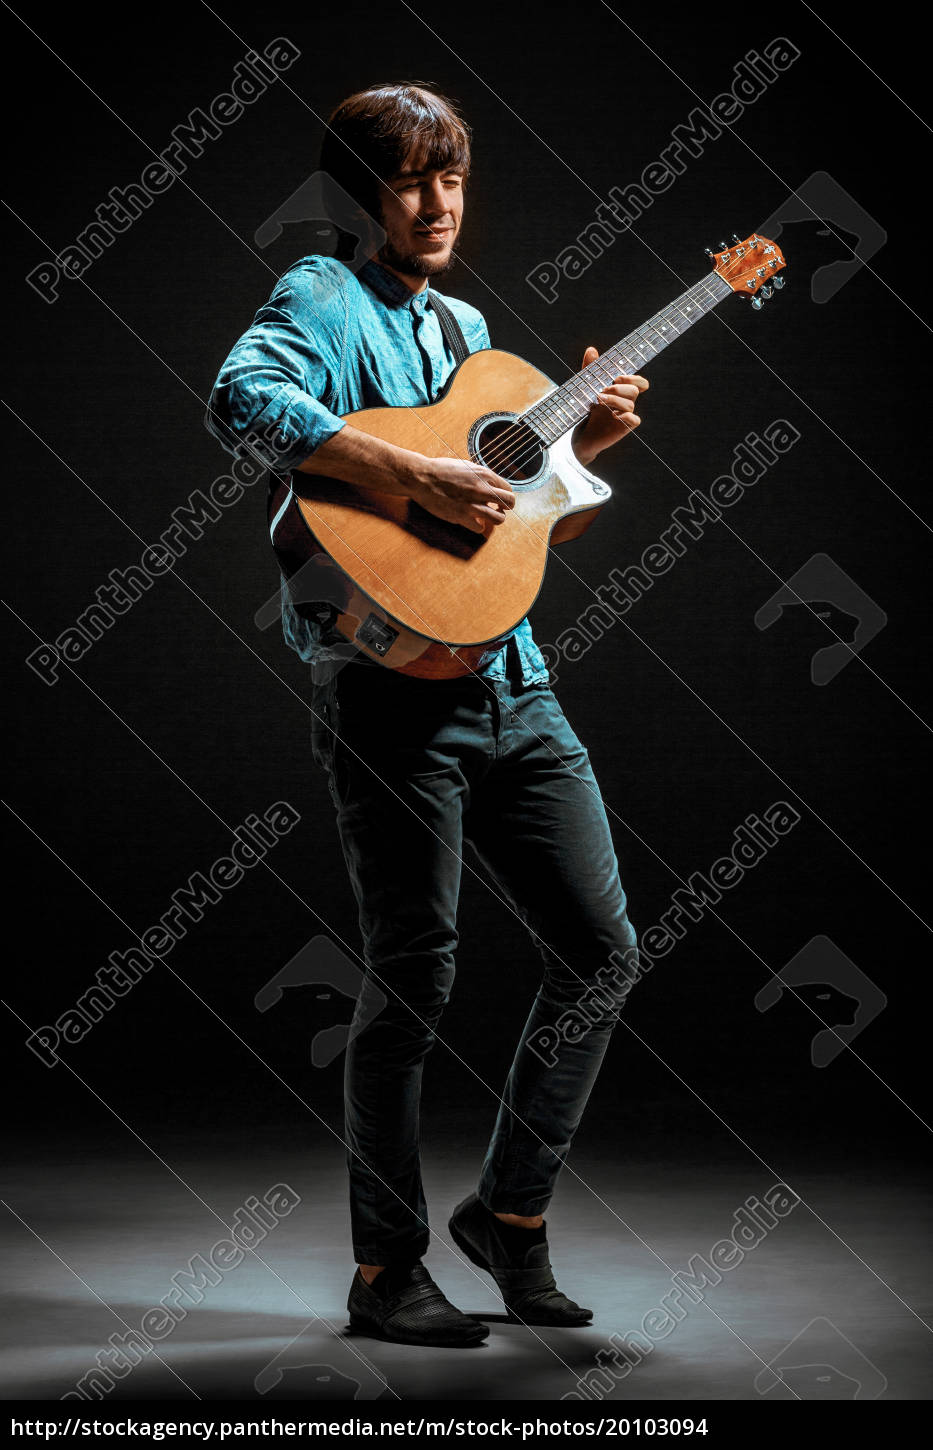 cool, guy, standing, with, guitar, on - 20103094